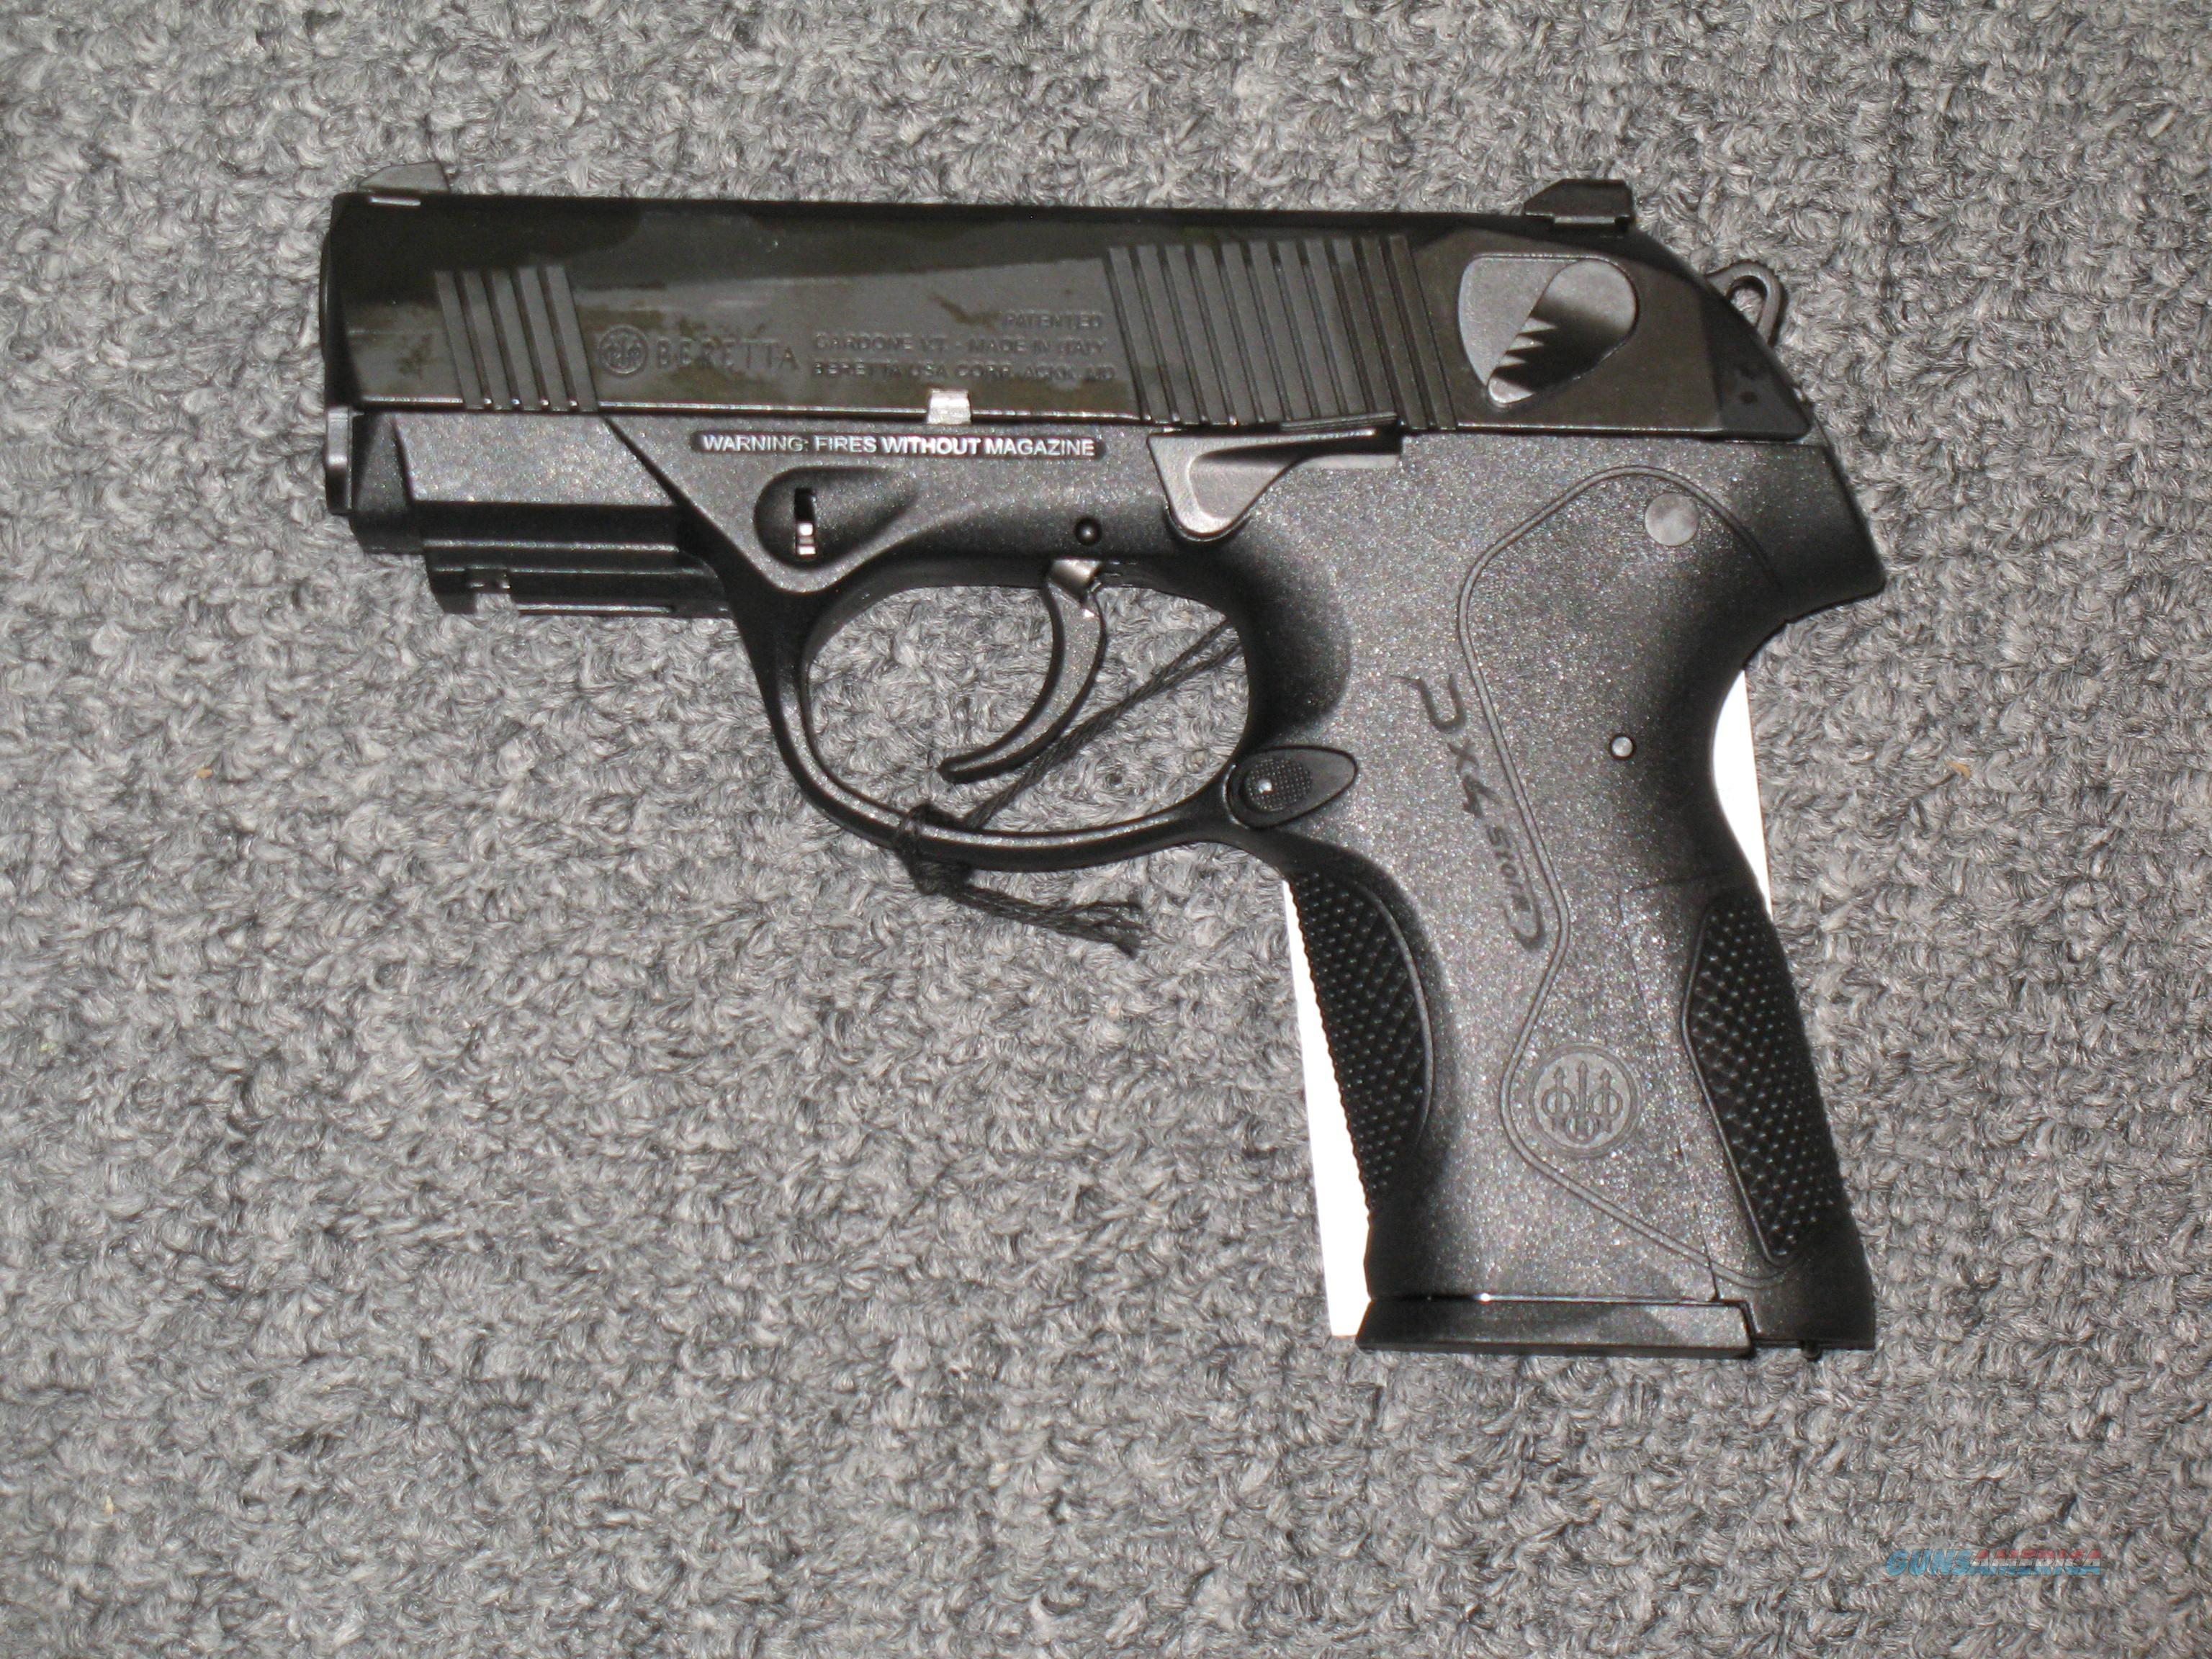 PX4 Storm F 40 Compact with 3 mags  Guns > Pistols > Beretta Pistols > Polymer Frame